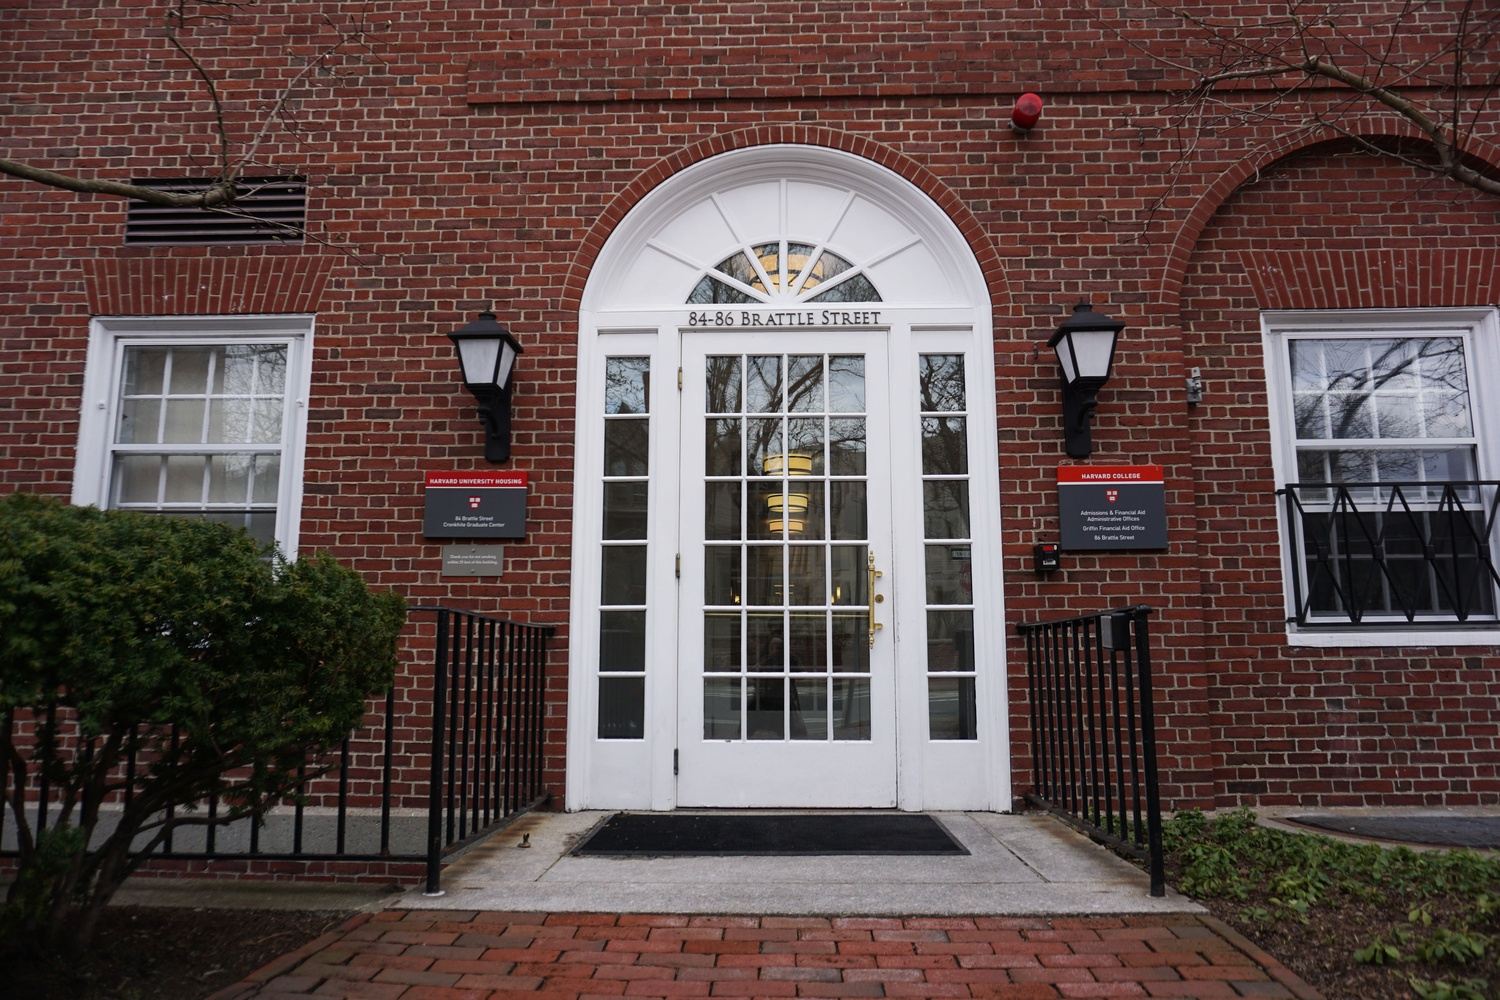 The College's admissions office is located on 86 Brattle Street.